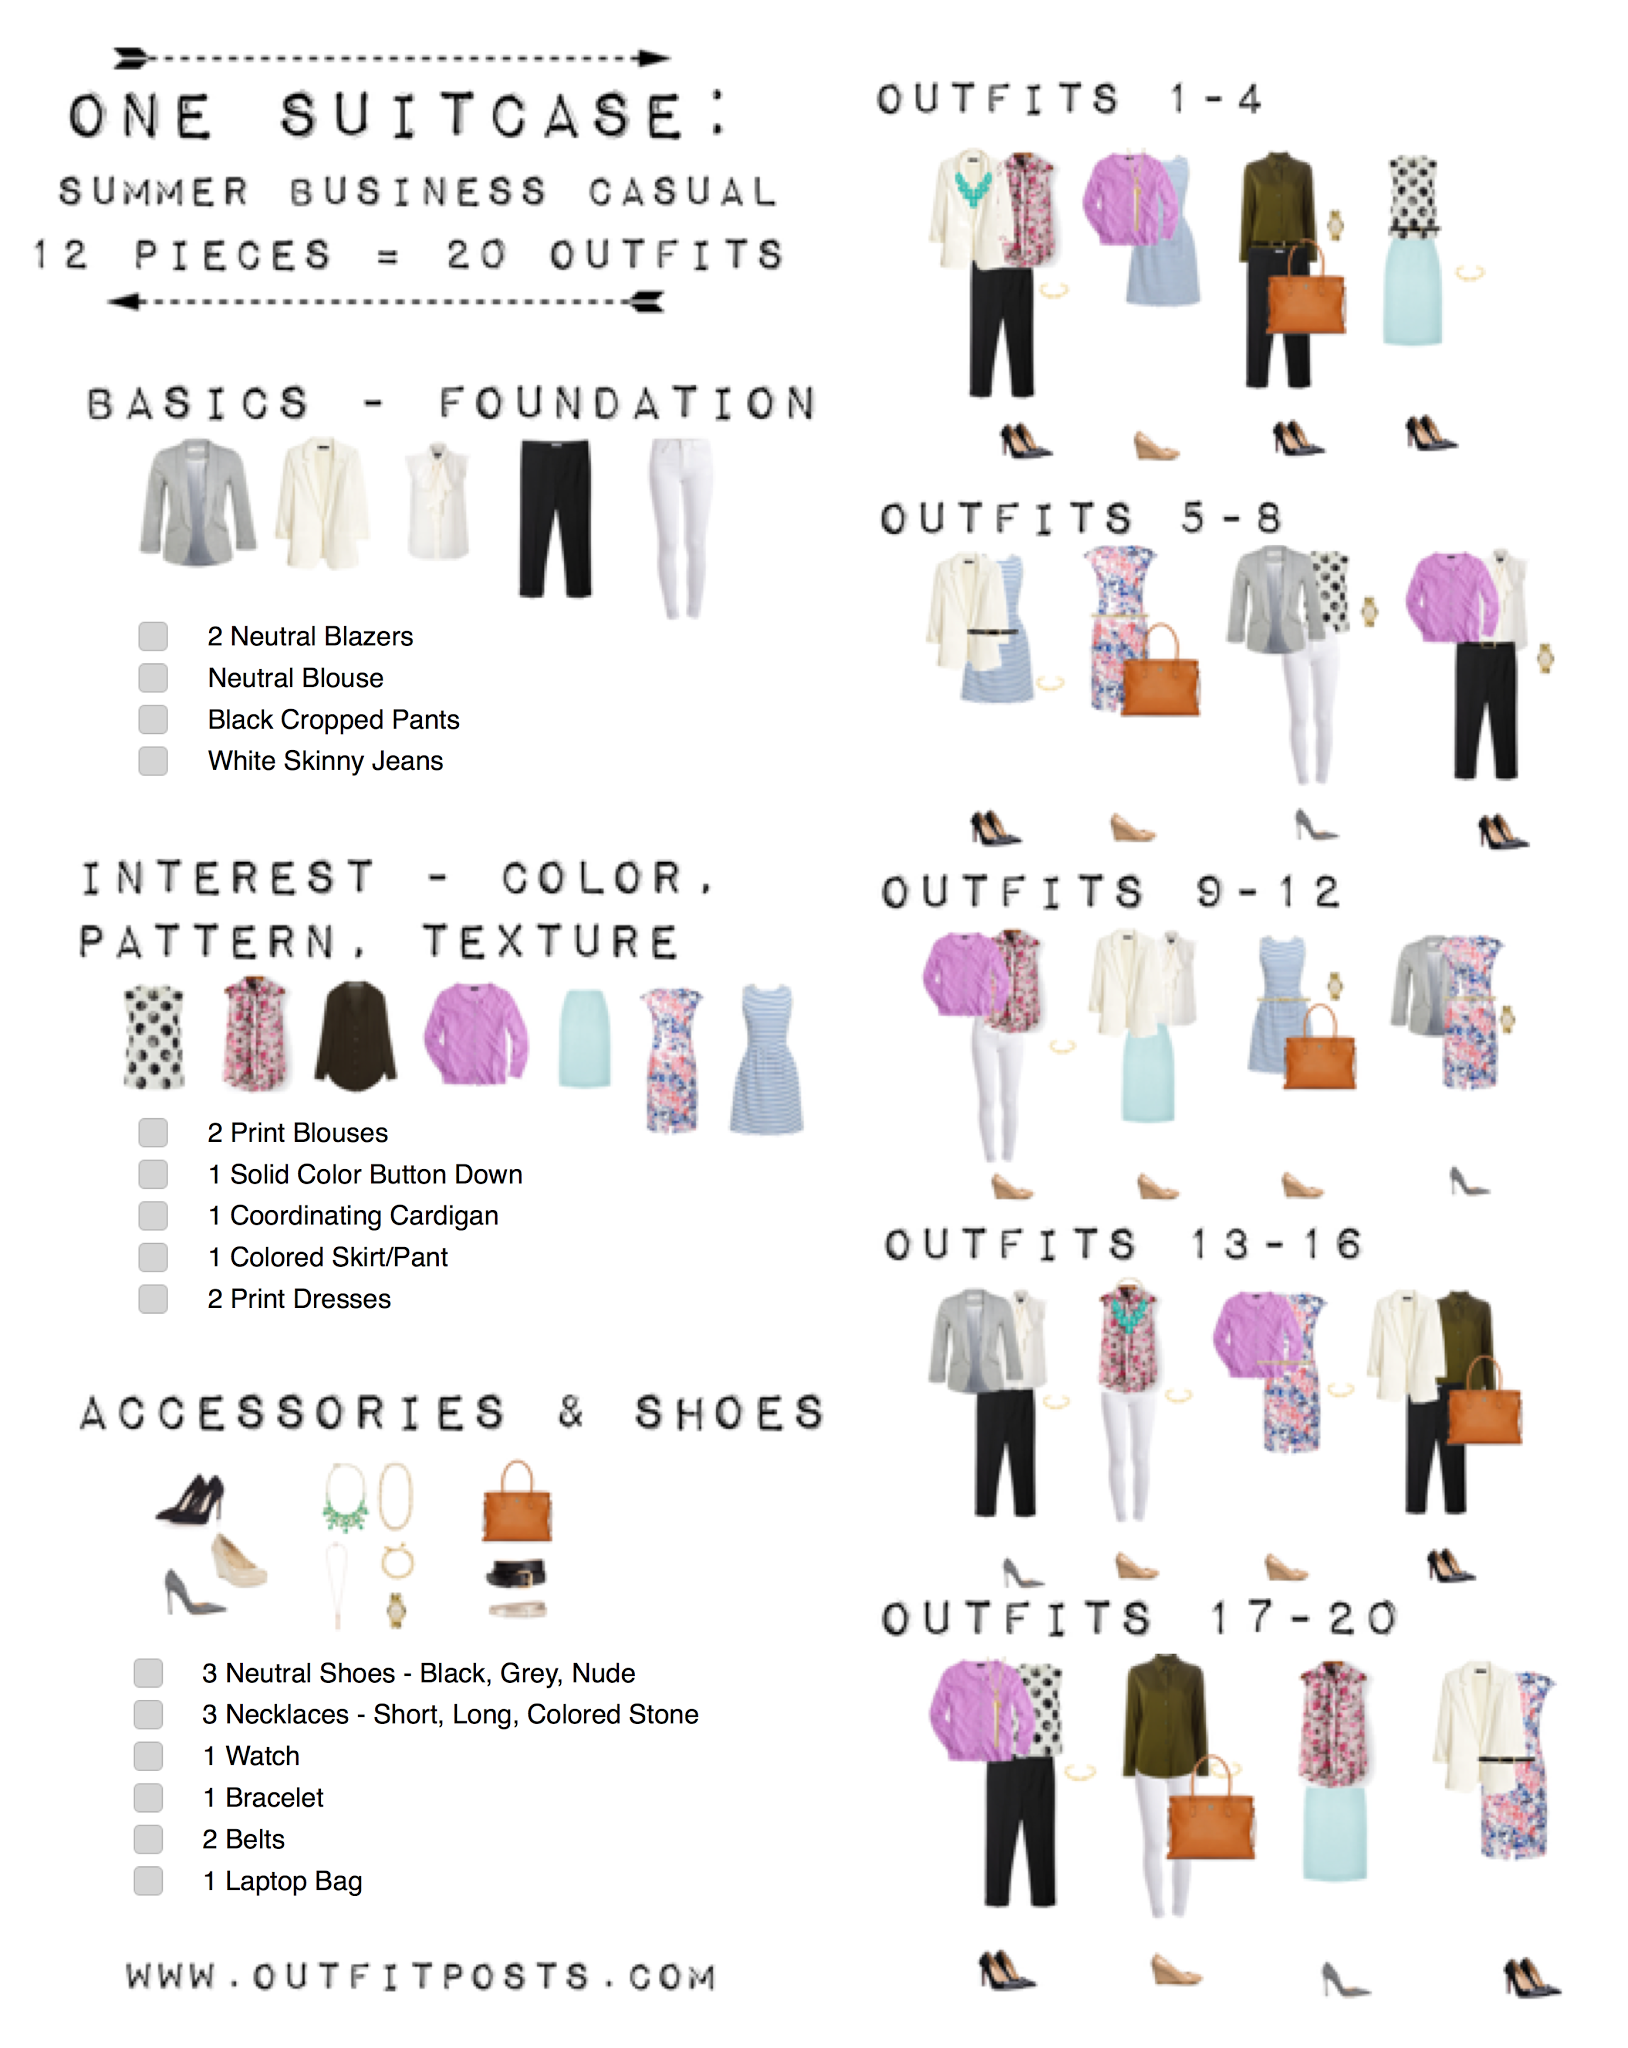 one suitcase checklist summer business casual capsule wardrobe